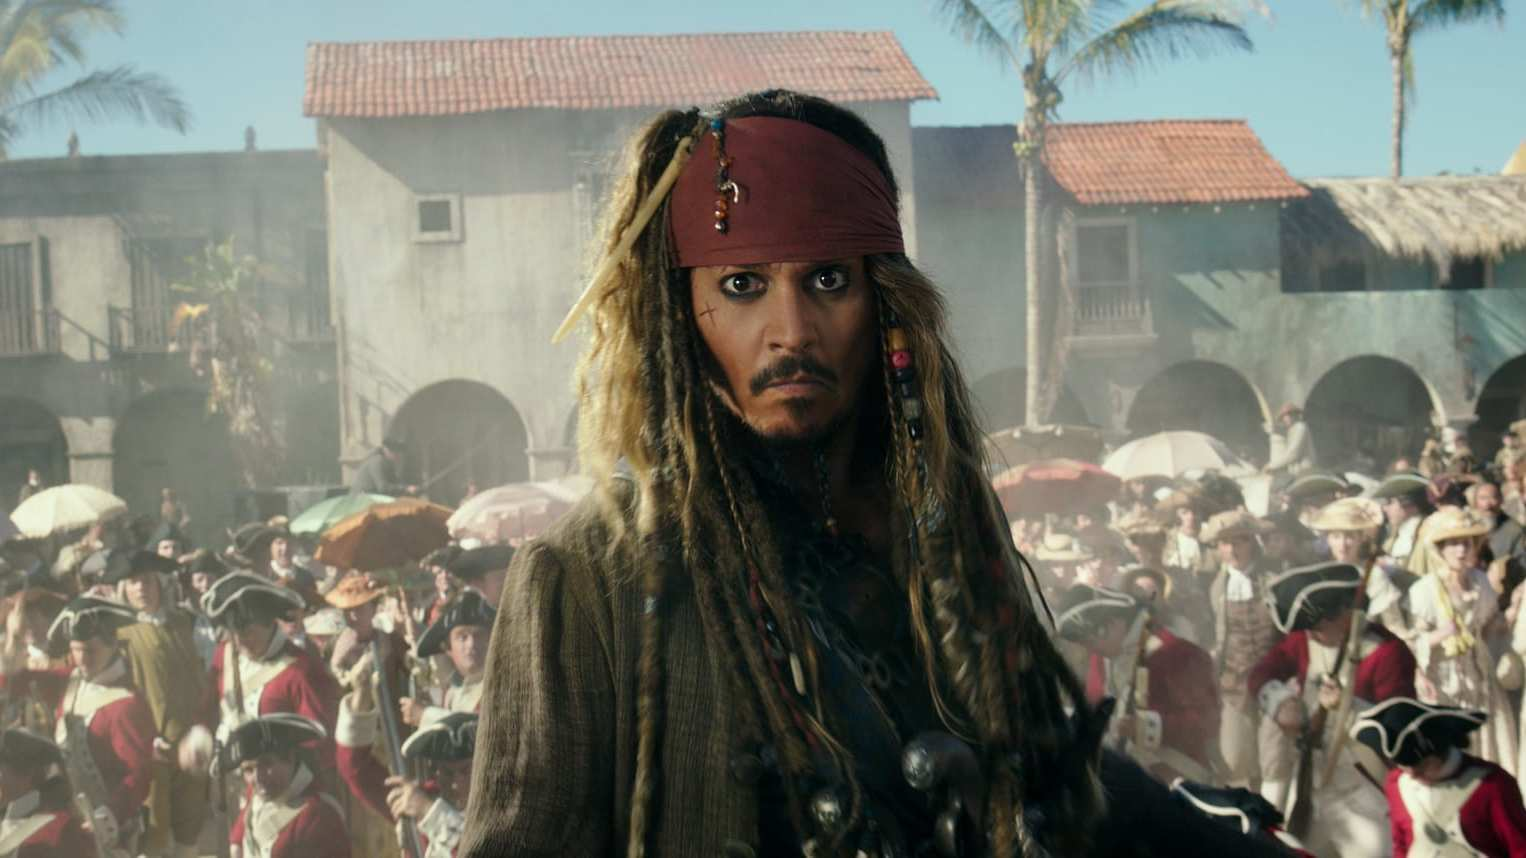 Captain Jack Sparrow, played by Johnny Depp, in the movie Pirates of the Caribbean: Dead Men Tell No Tales